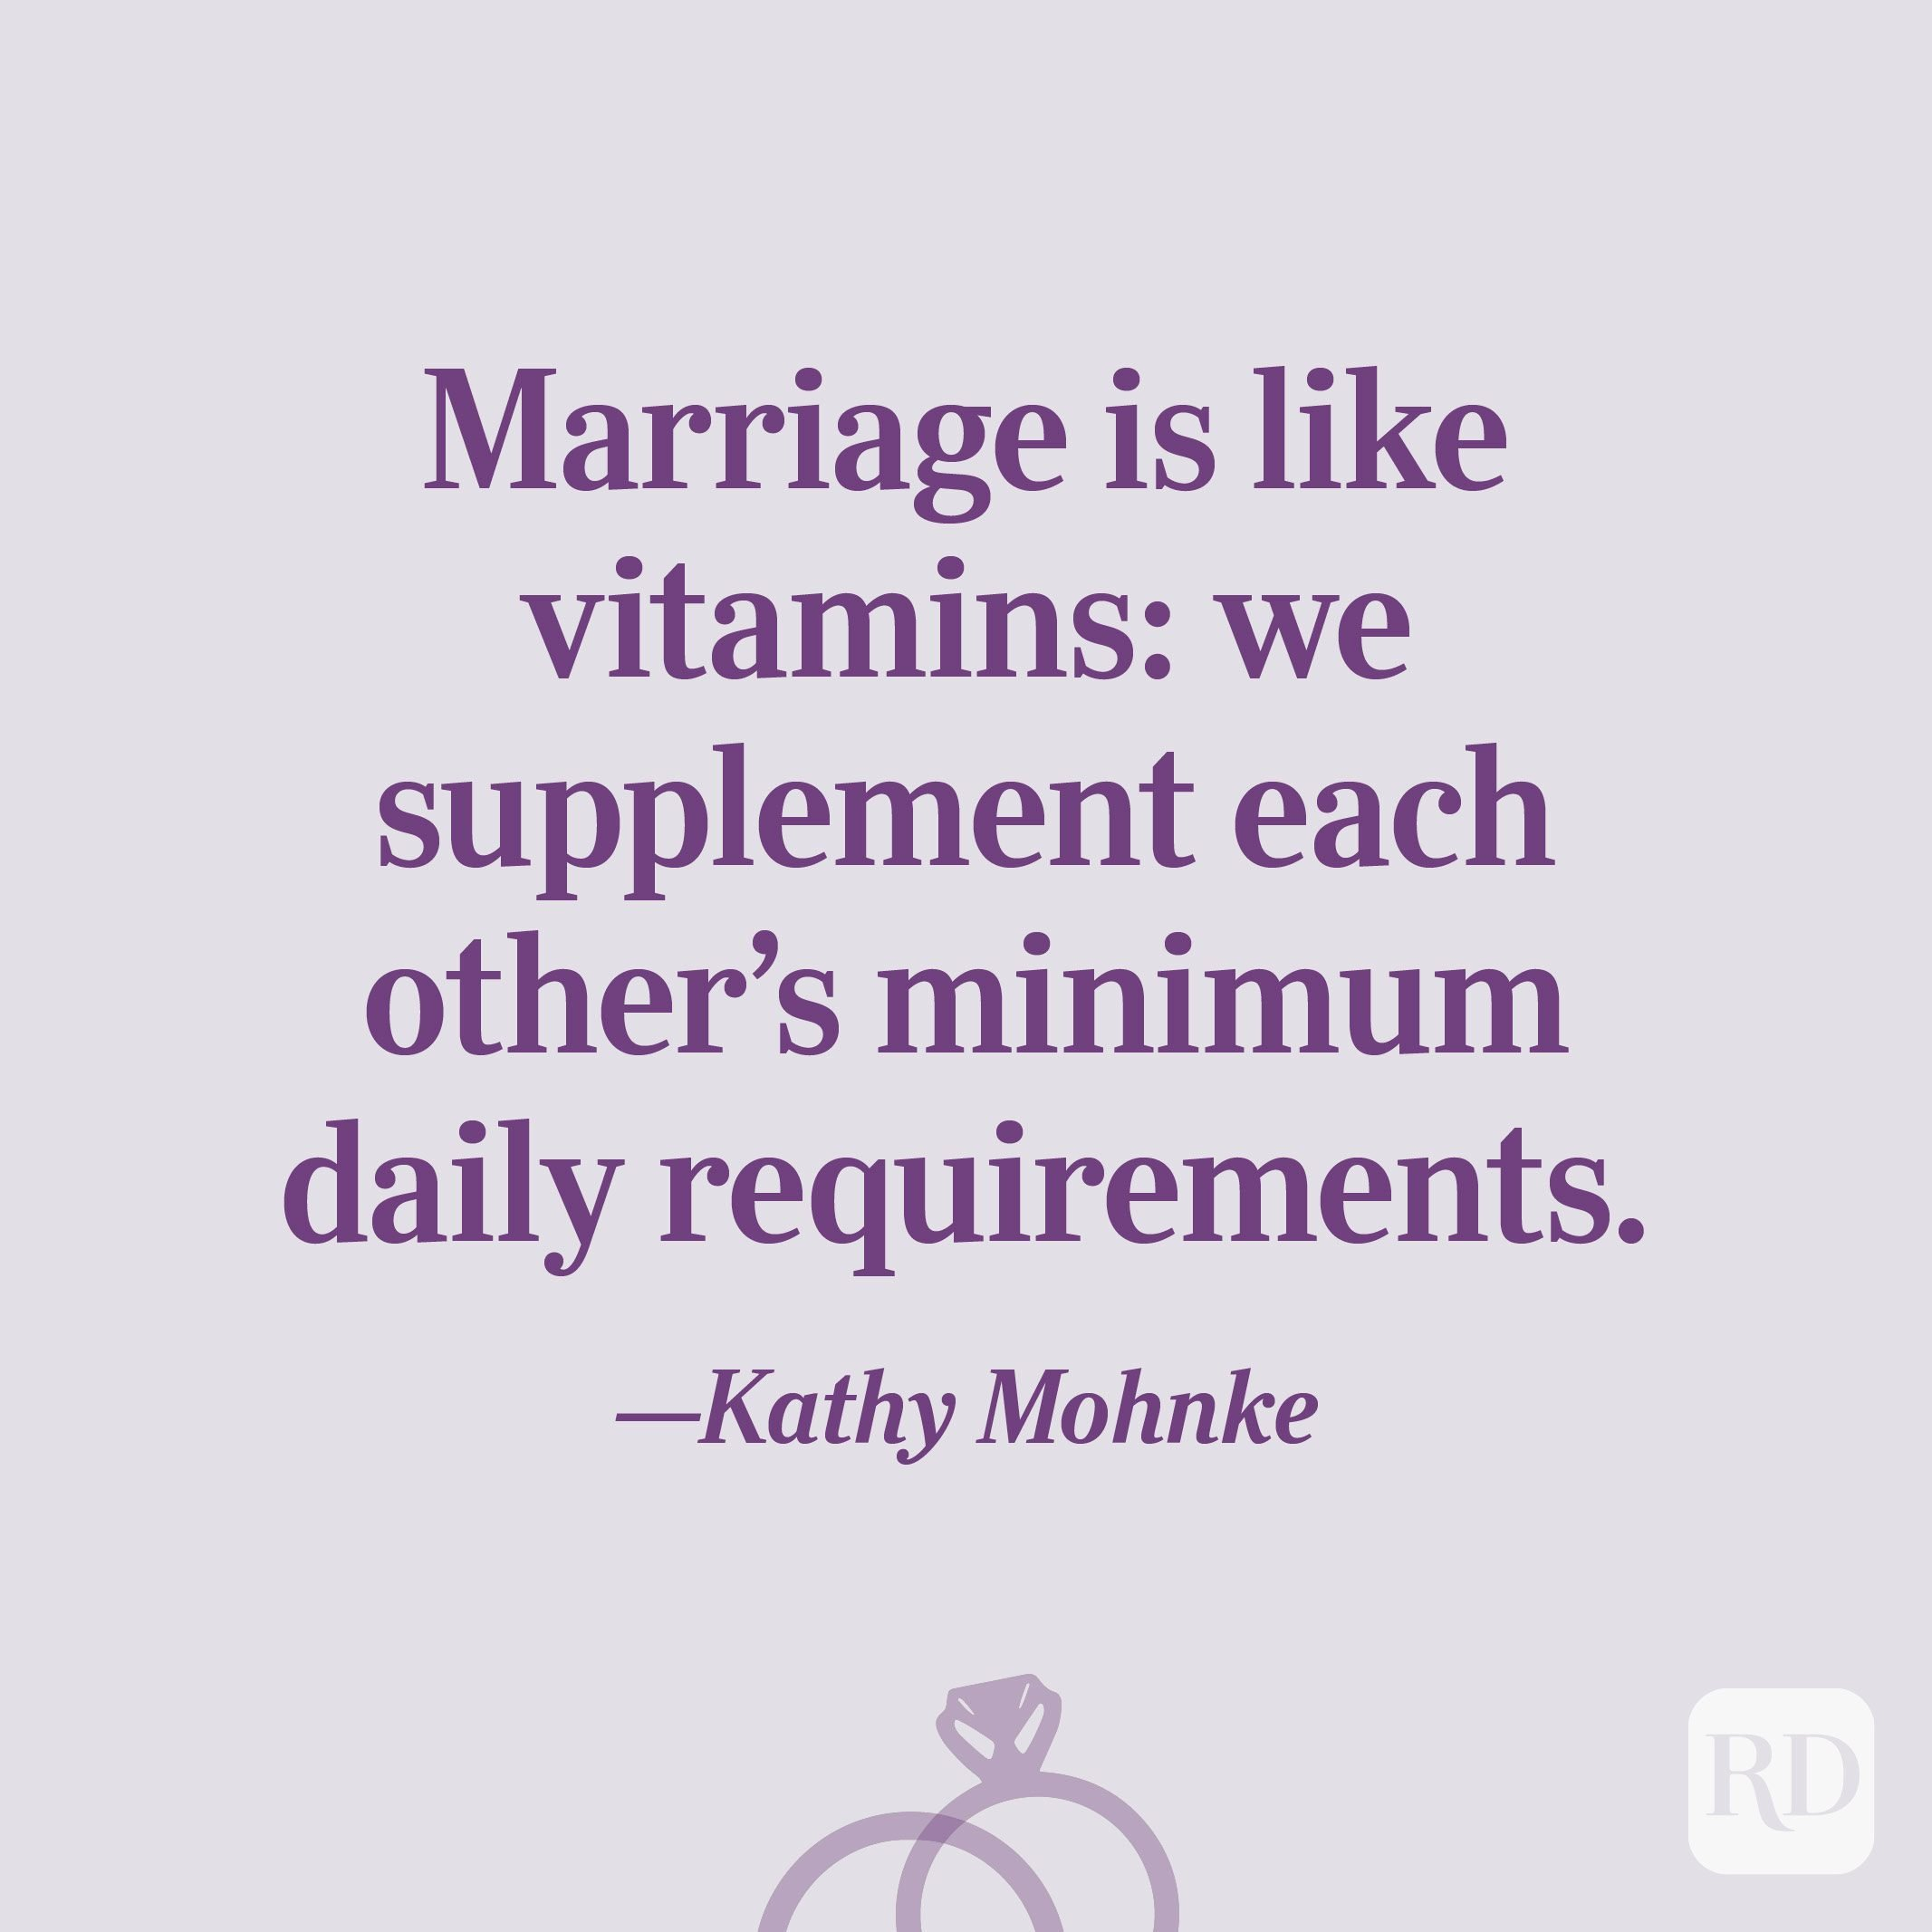 """Marriage is like vitamins: we supplement each other's minimum daily requirements.""—Kathy Mohnke"